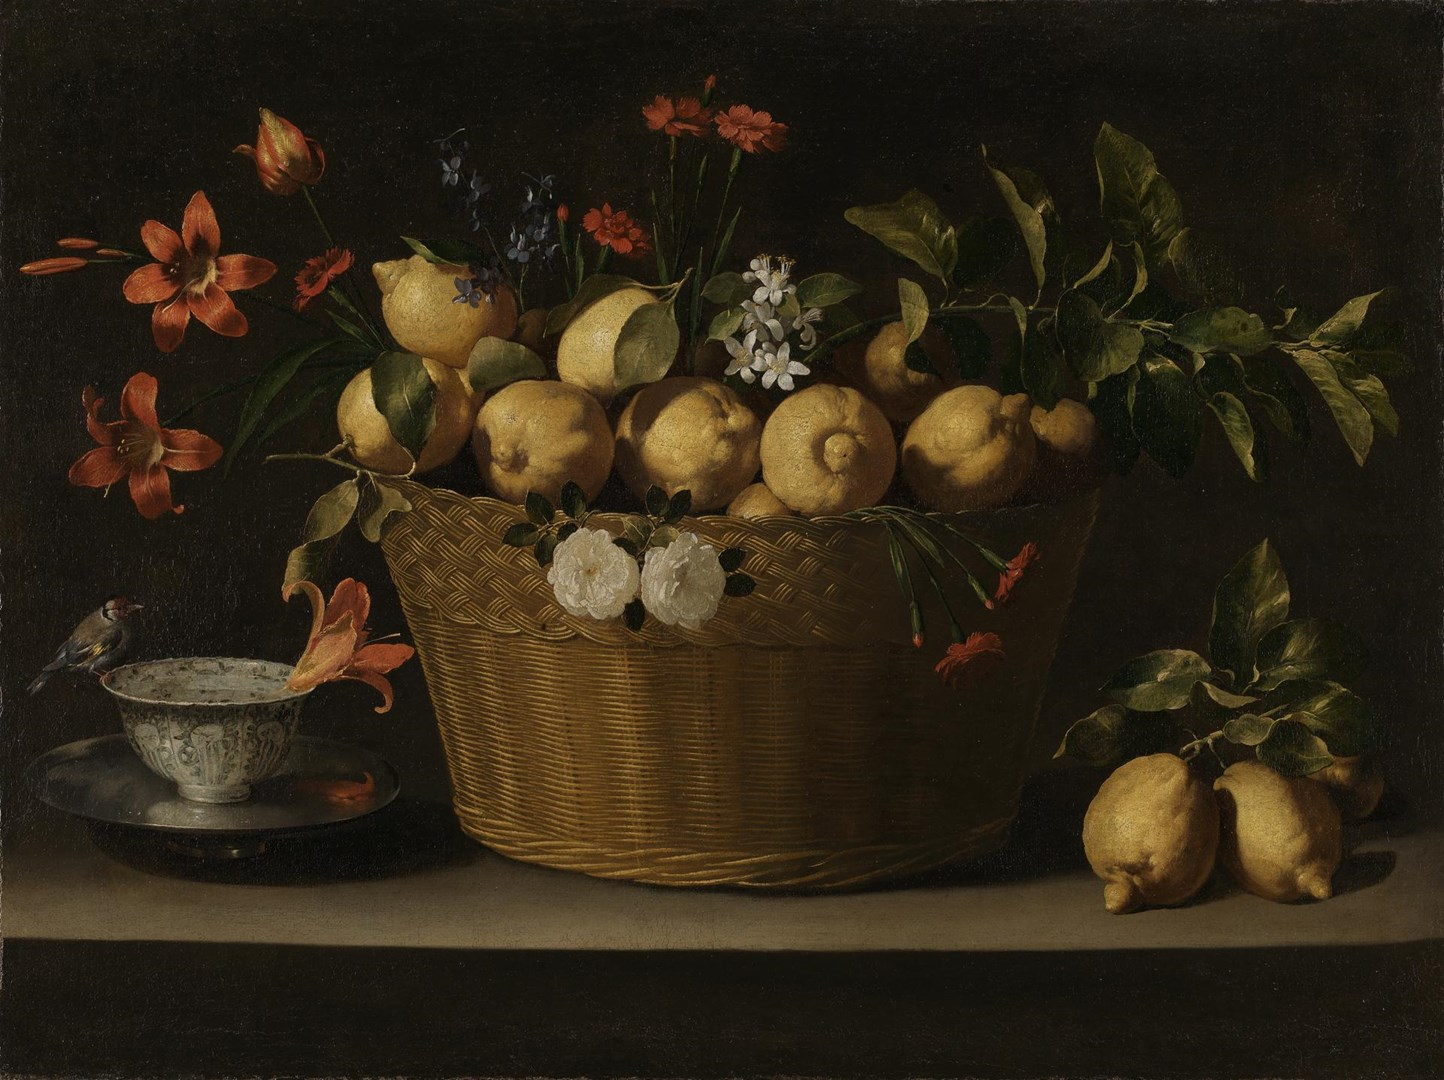 Still Life with Lemons in a Wicker Basket by Juan de Zurbarán